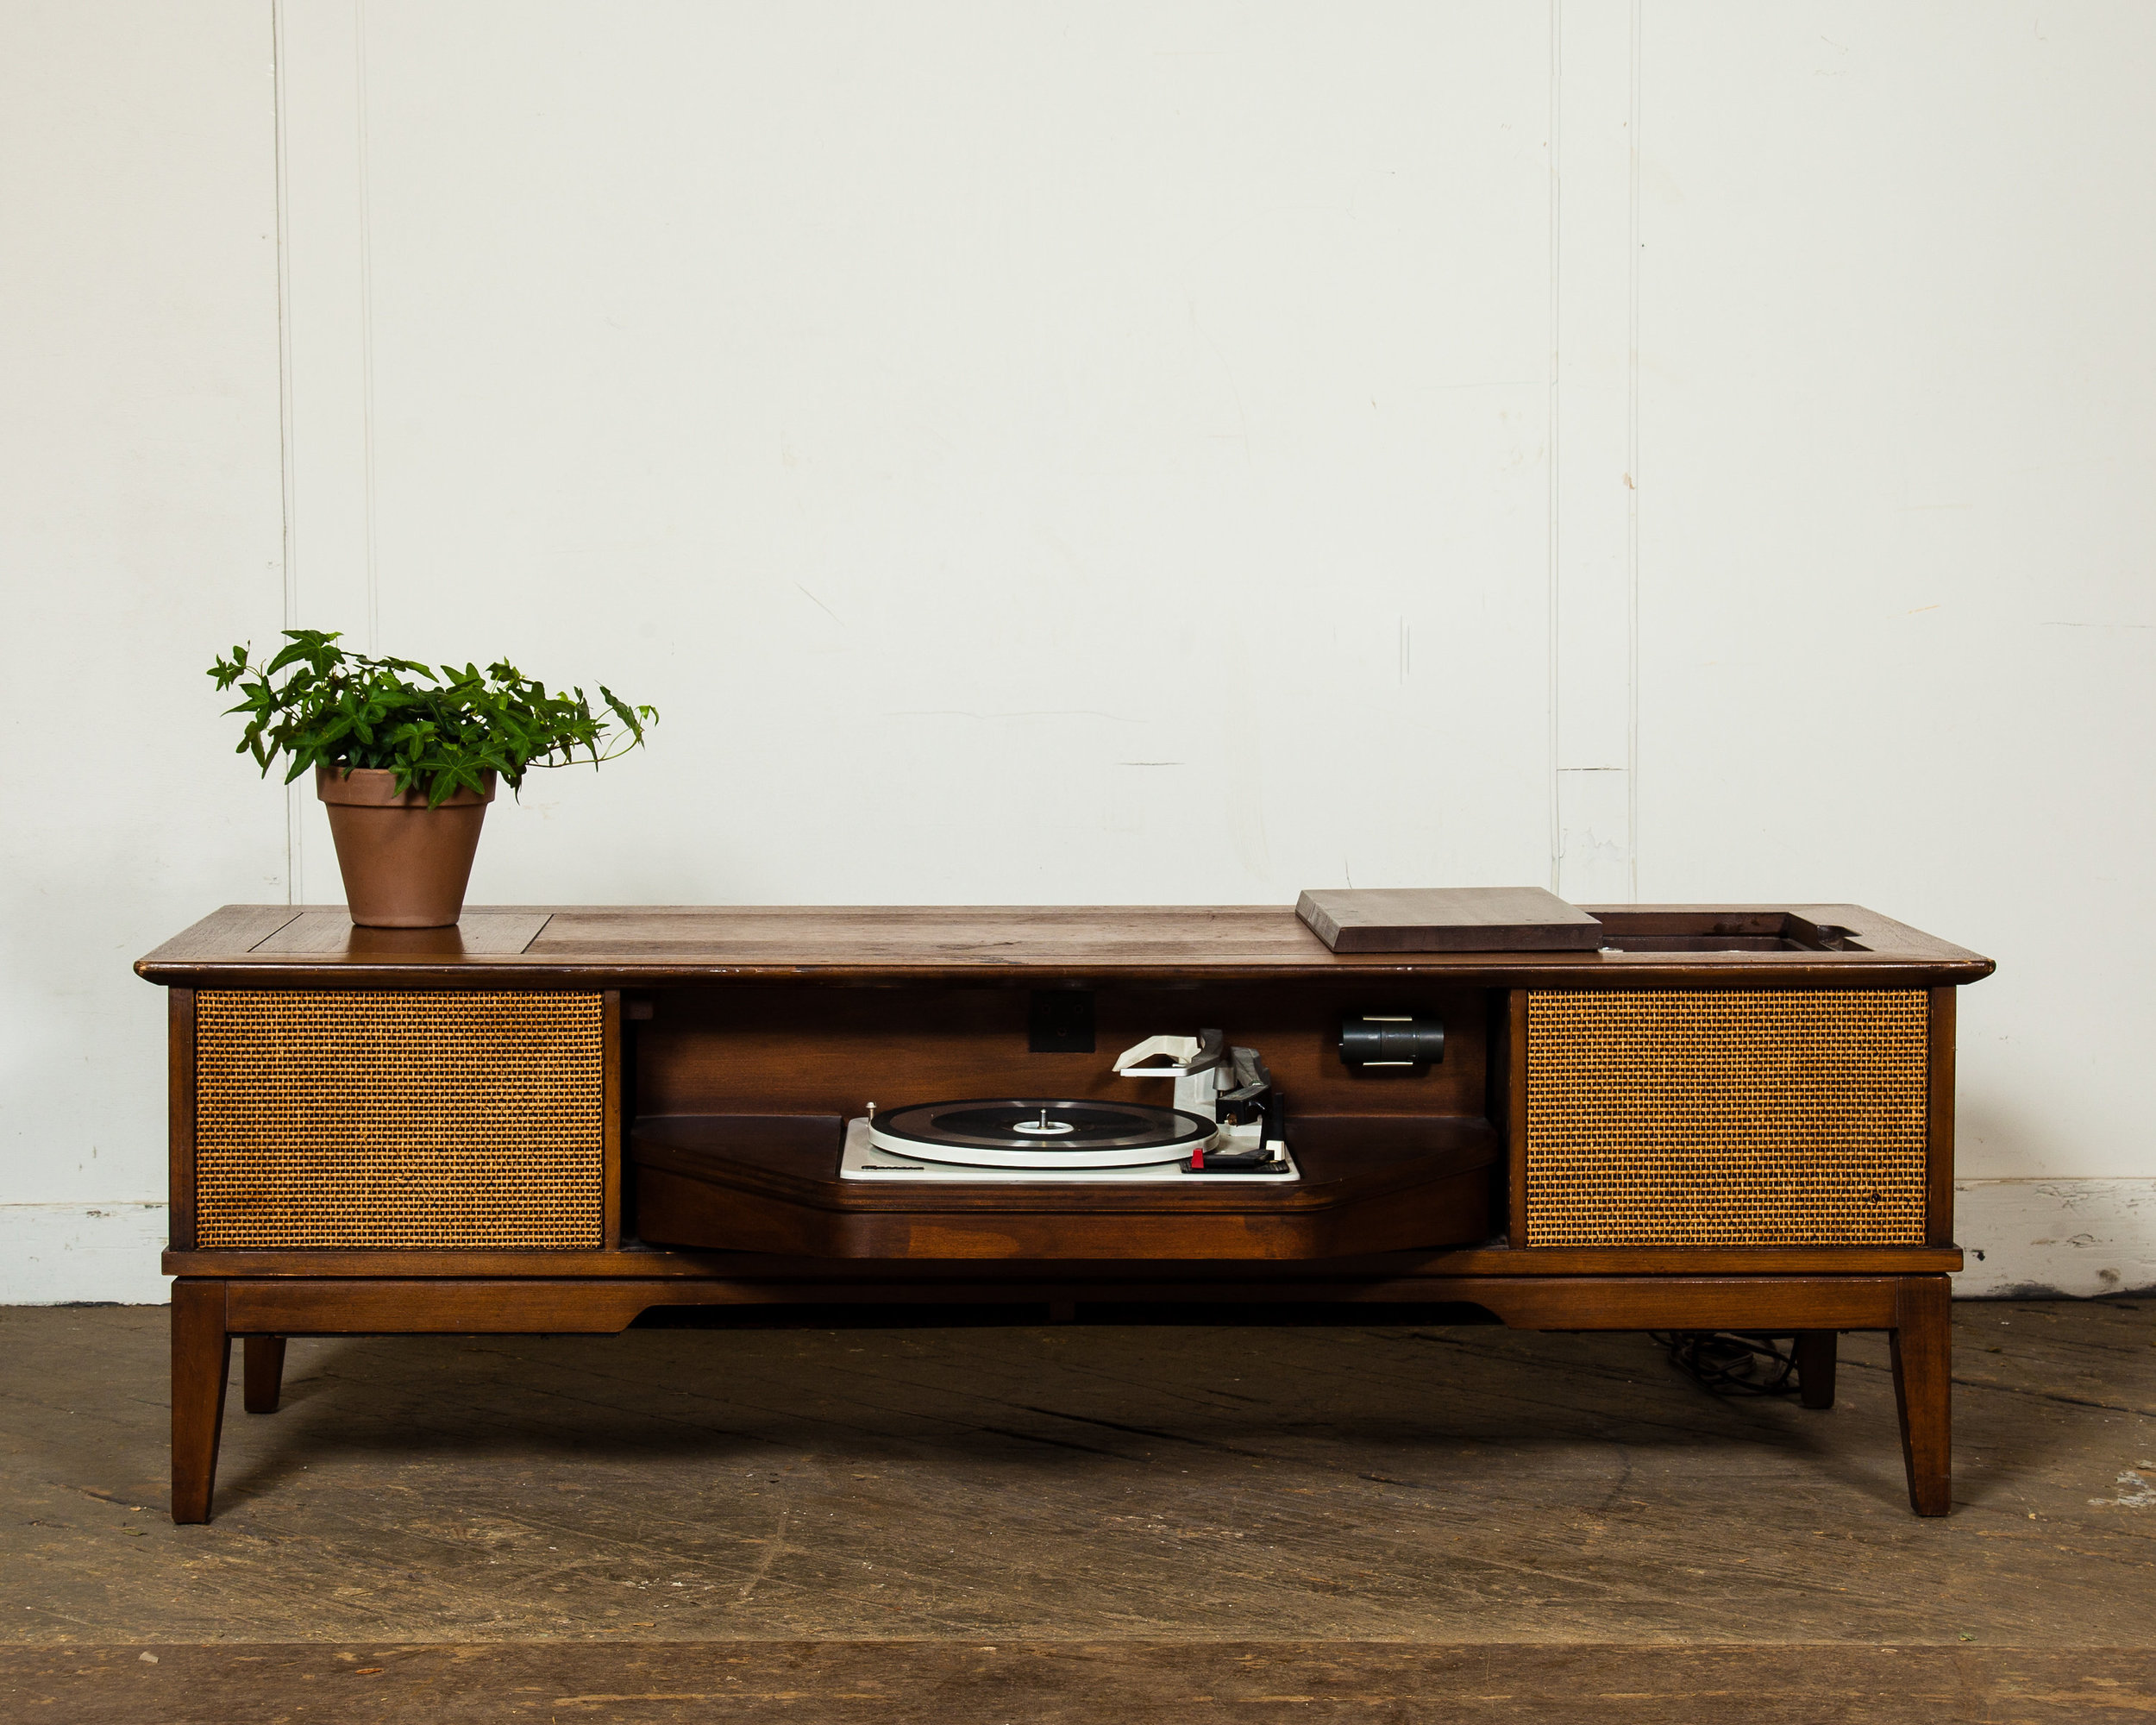 Magnavox AM/FM Stereo Coffee Table with Turntable